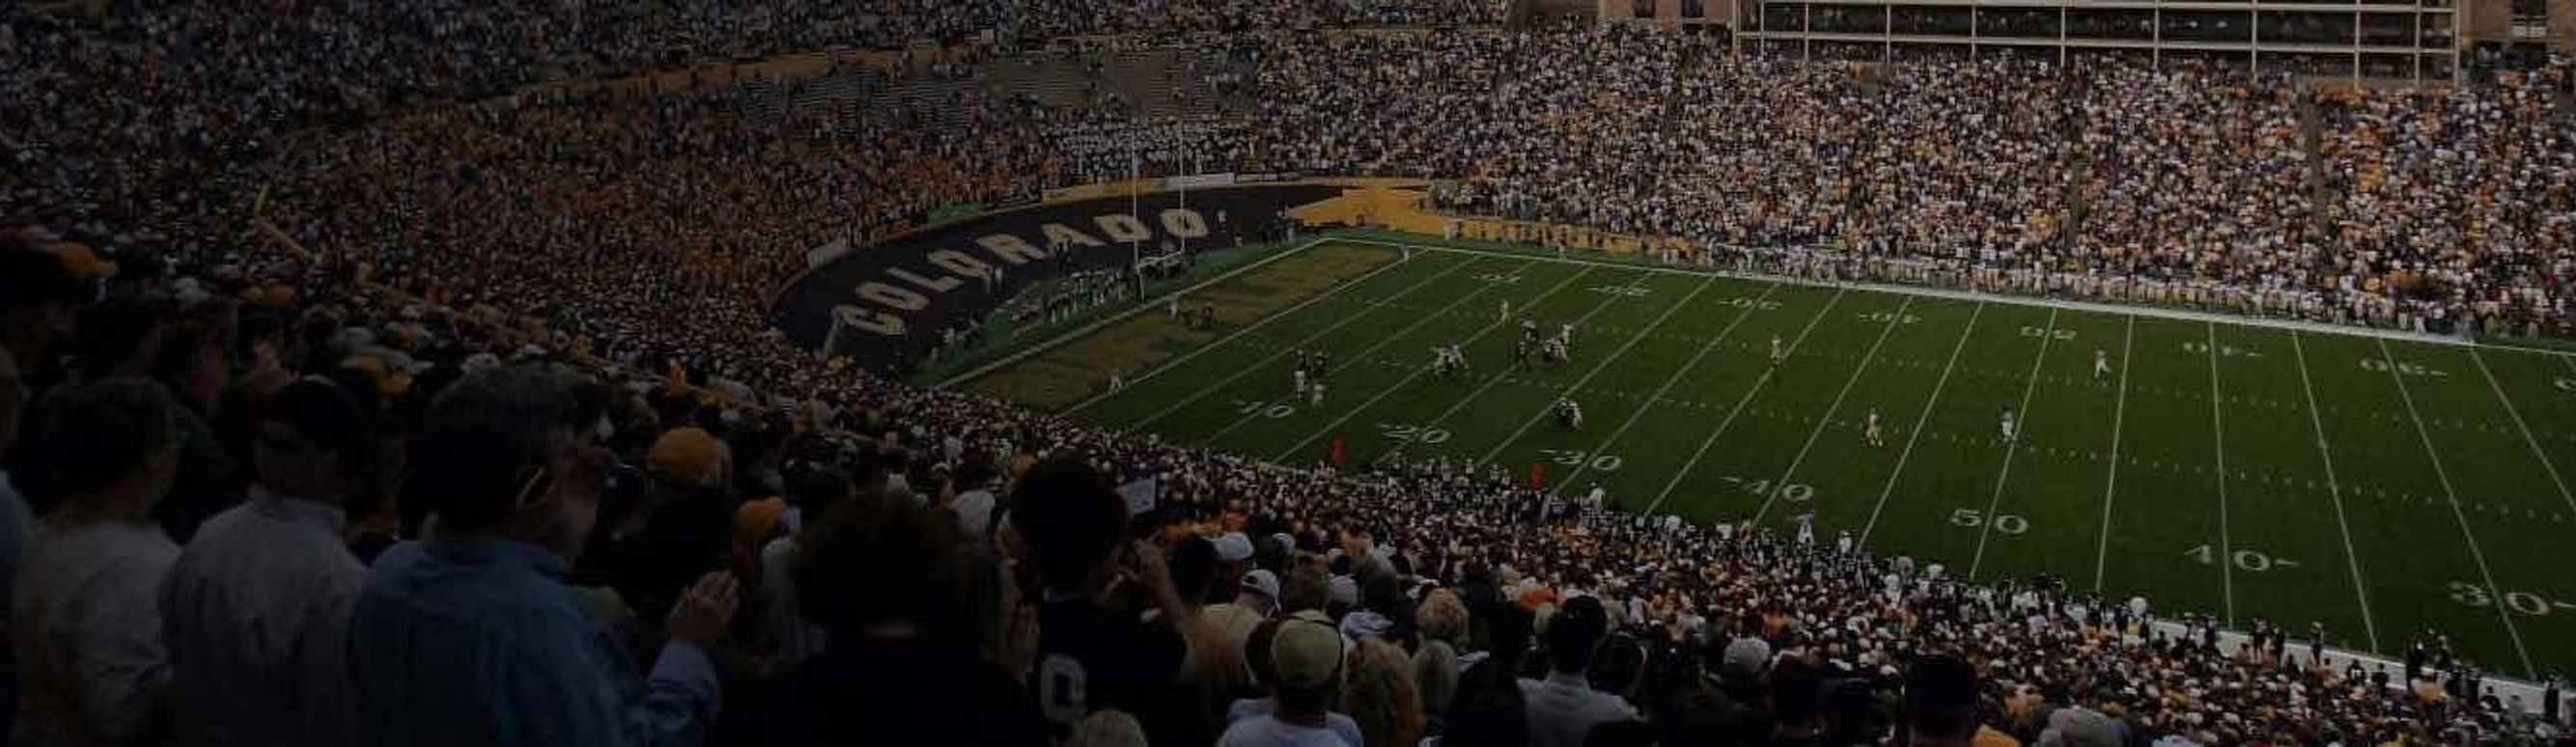 Buffaloes football team on game day at Folsom Field in Boulder, Colorado